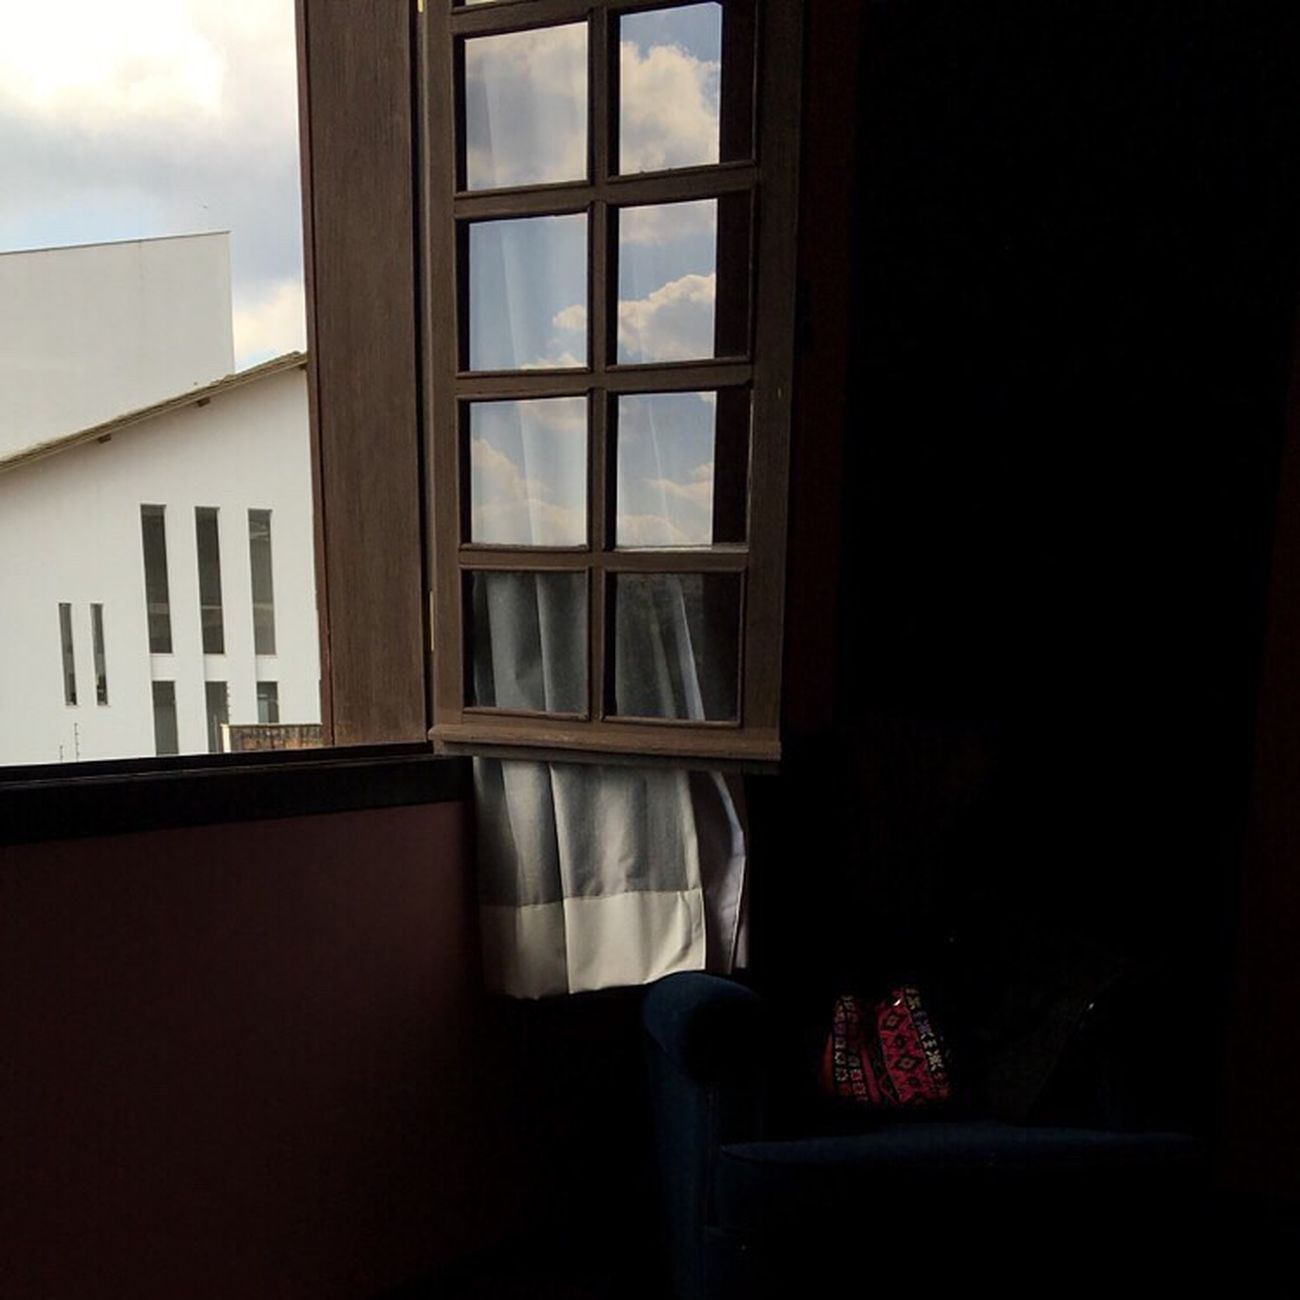 Home Hometown Reflections Blue Sky Wooden Window Childhood Home Brazil View